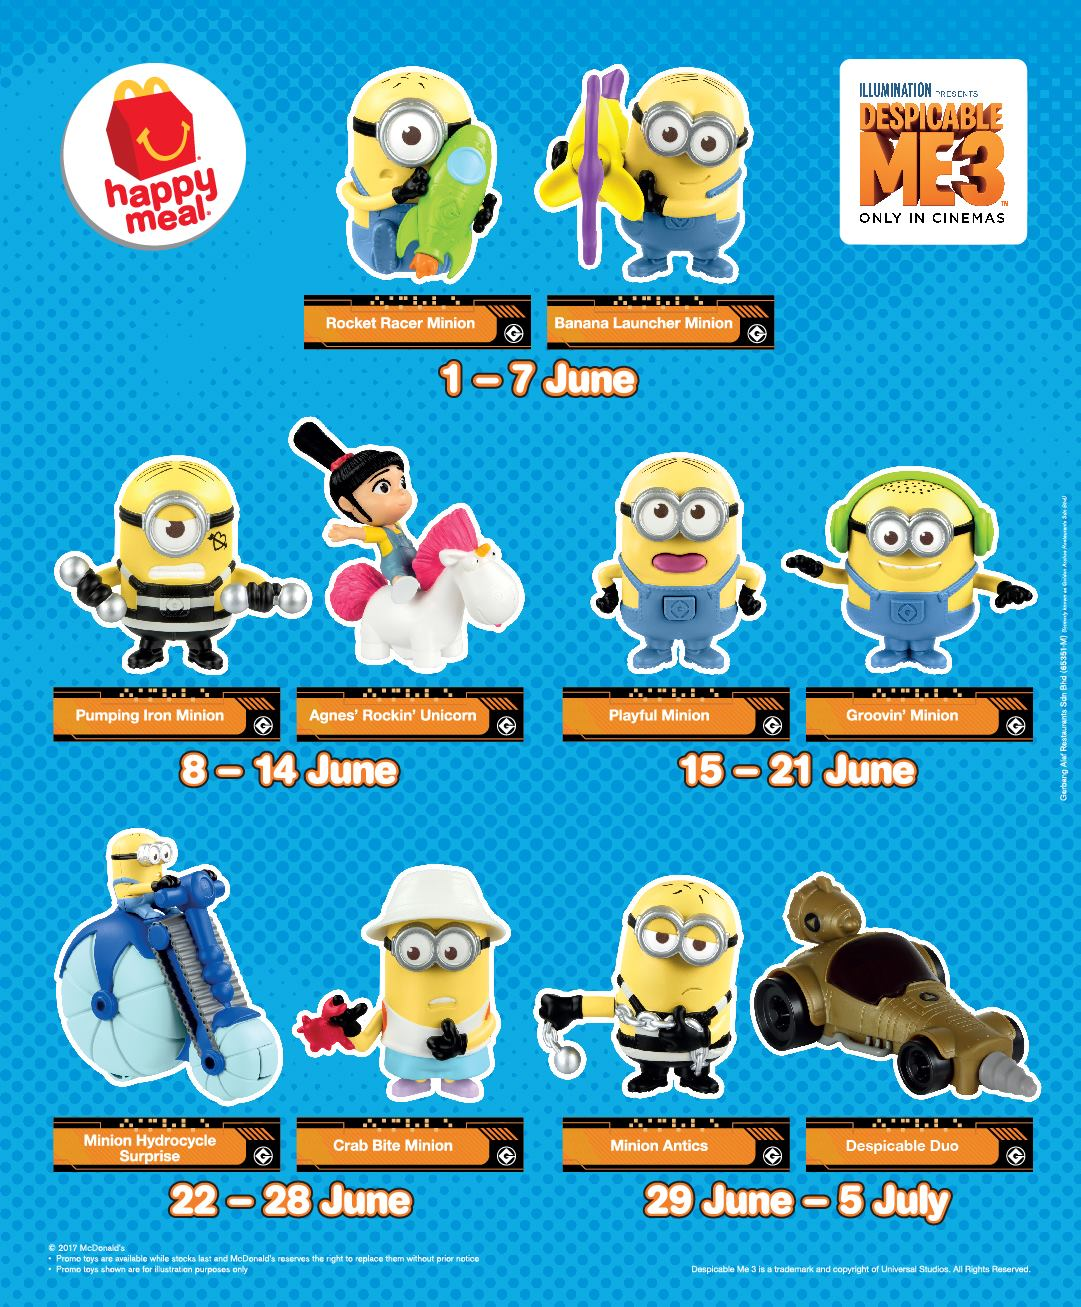 FREE McDonald's Happy Meal Despicable Me 3 Minion Toys ...